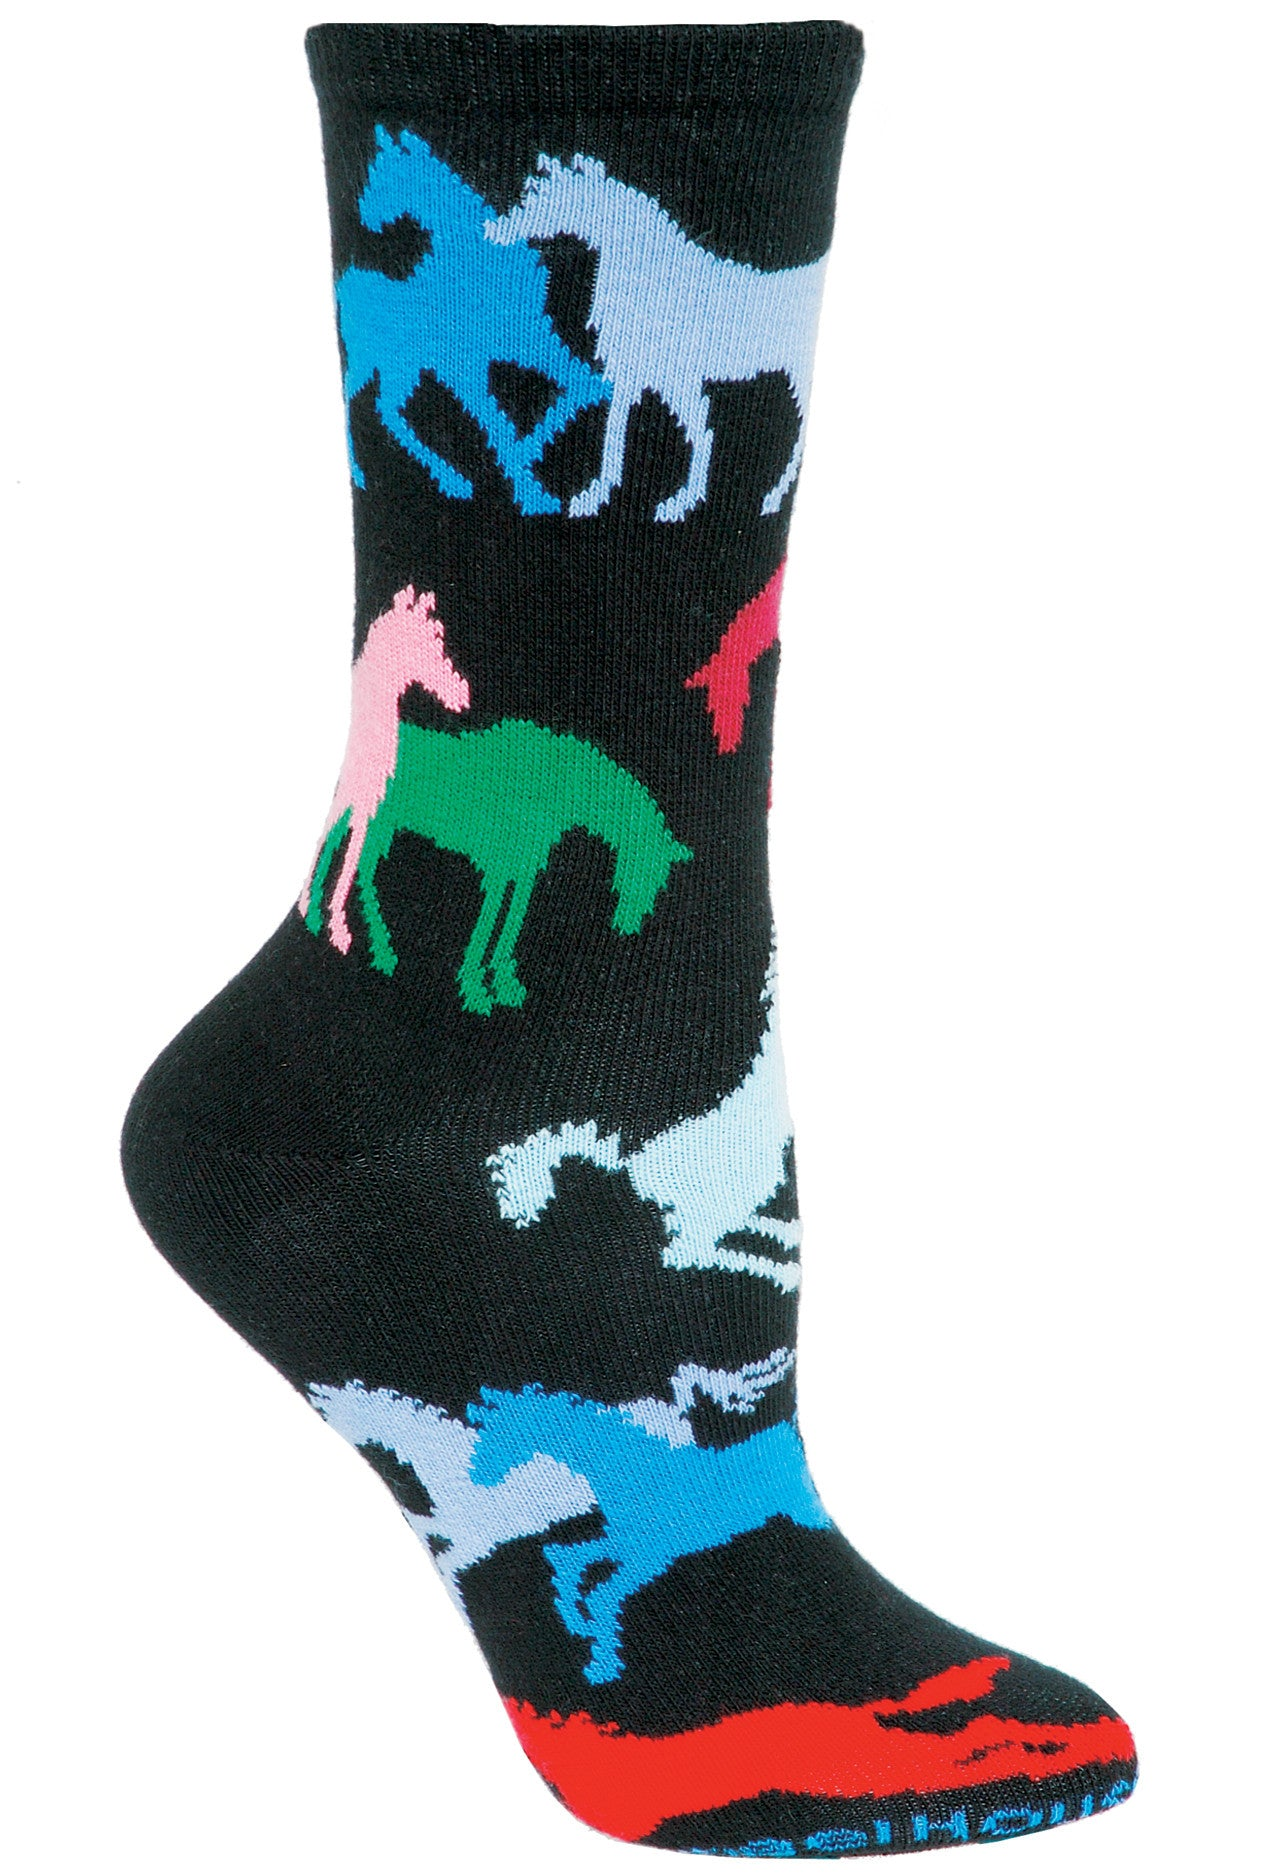 Colorful Horses Crew Socks on Black